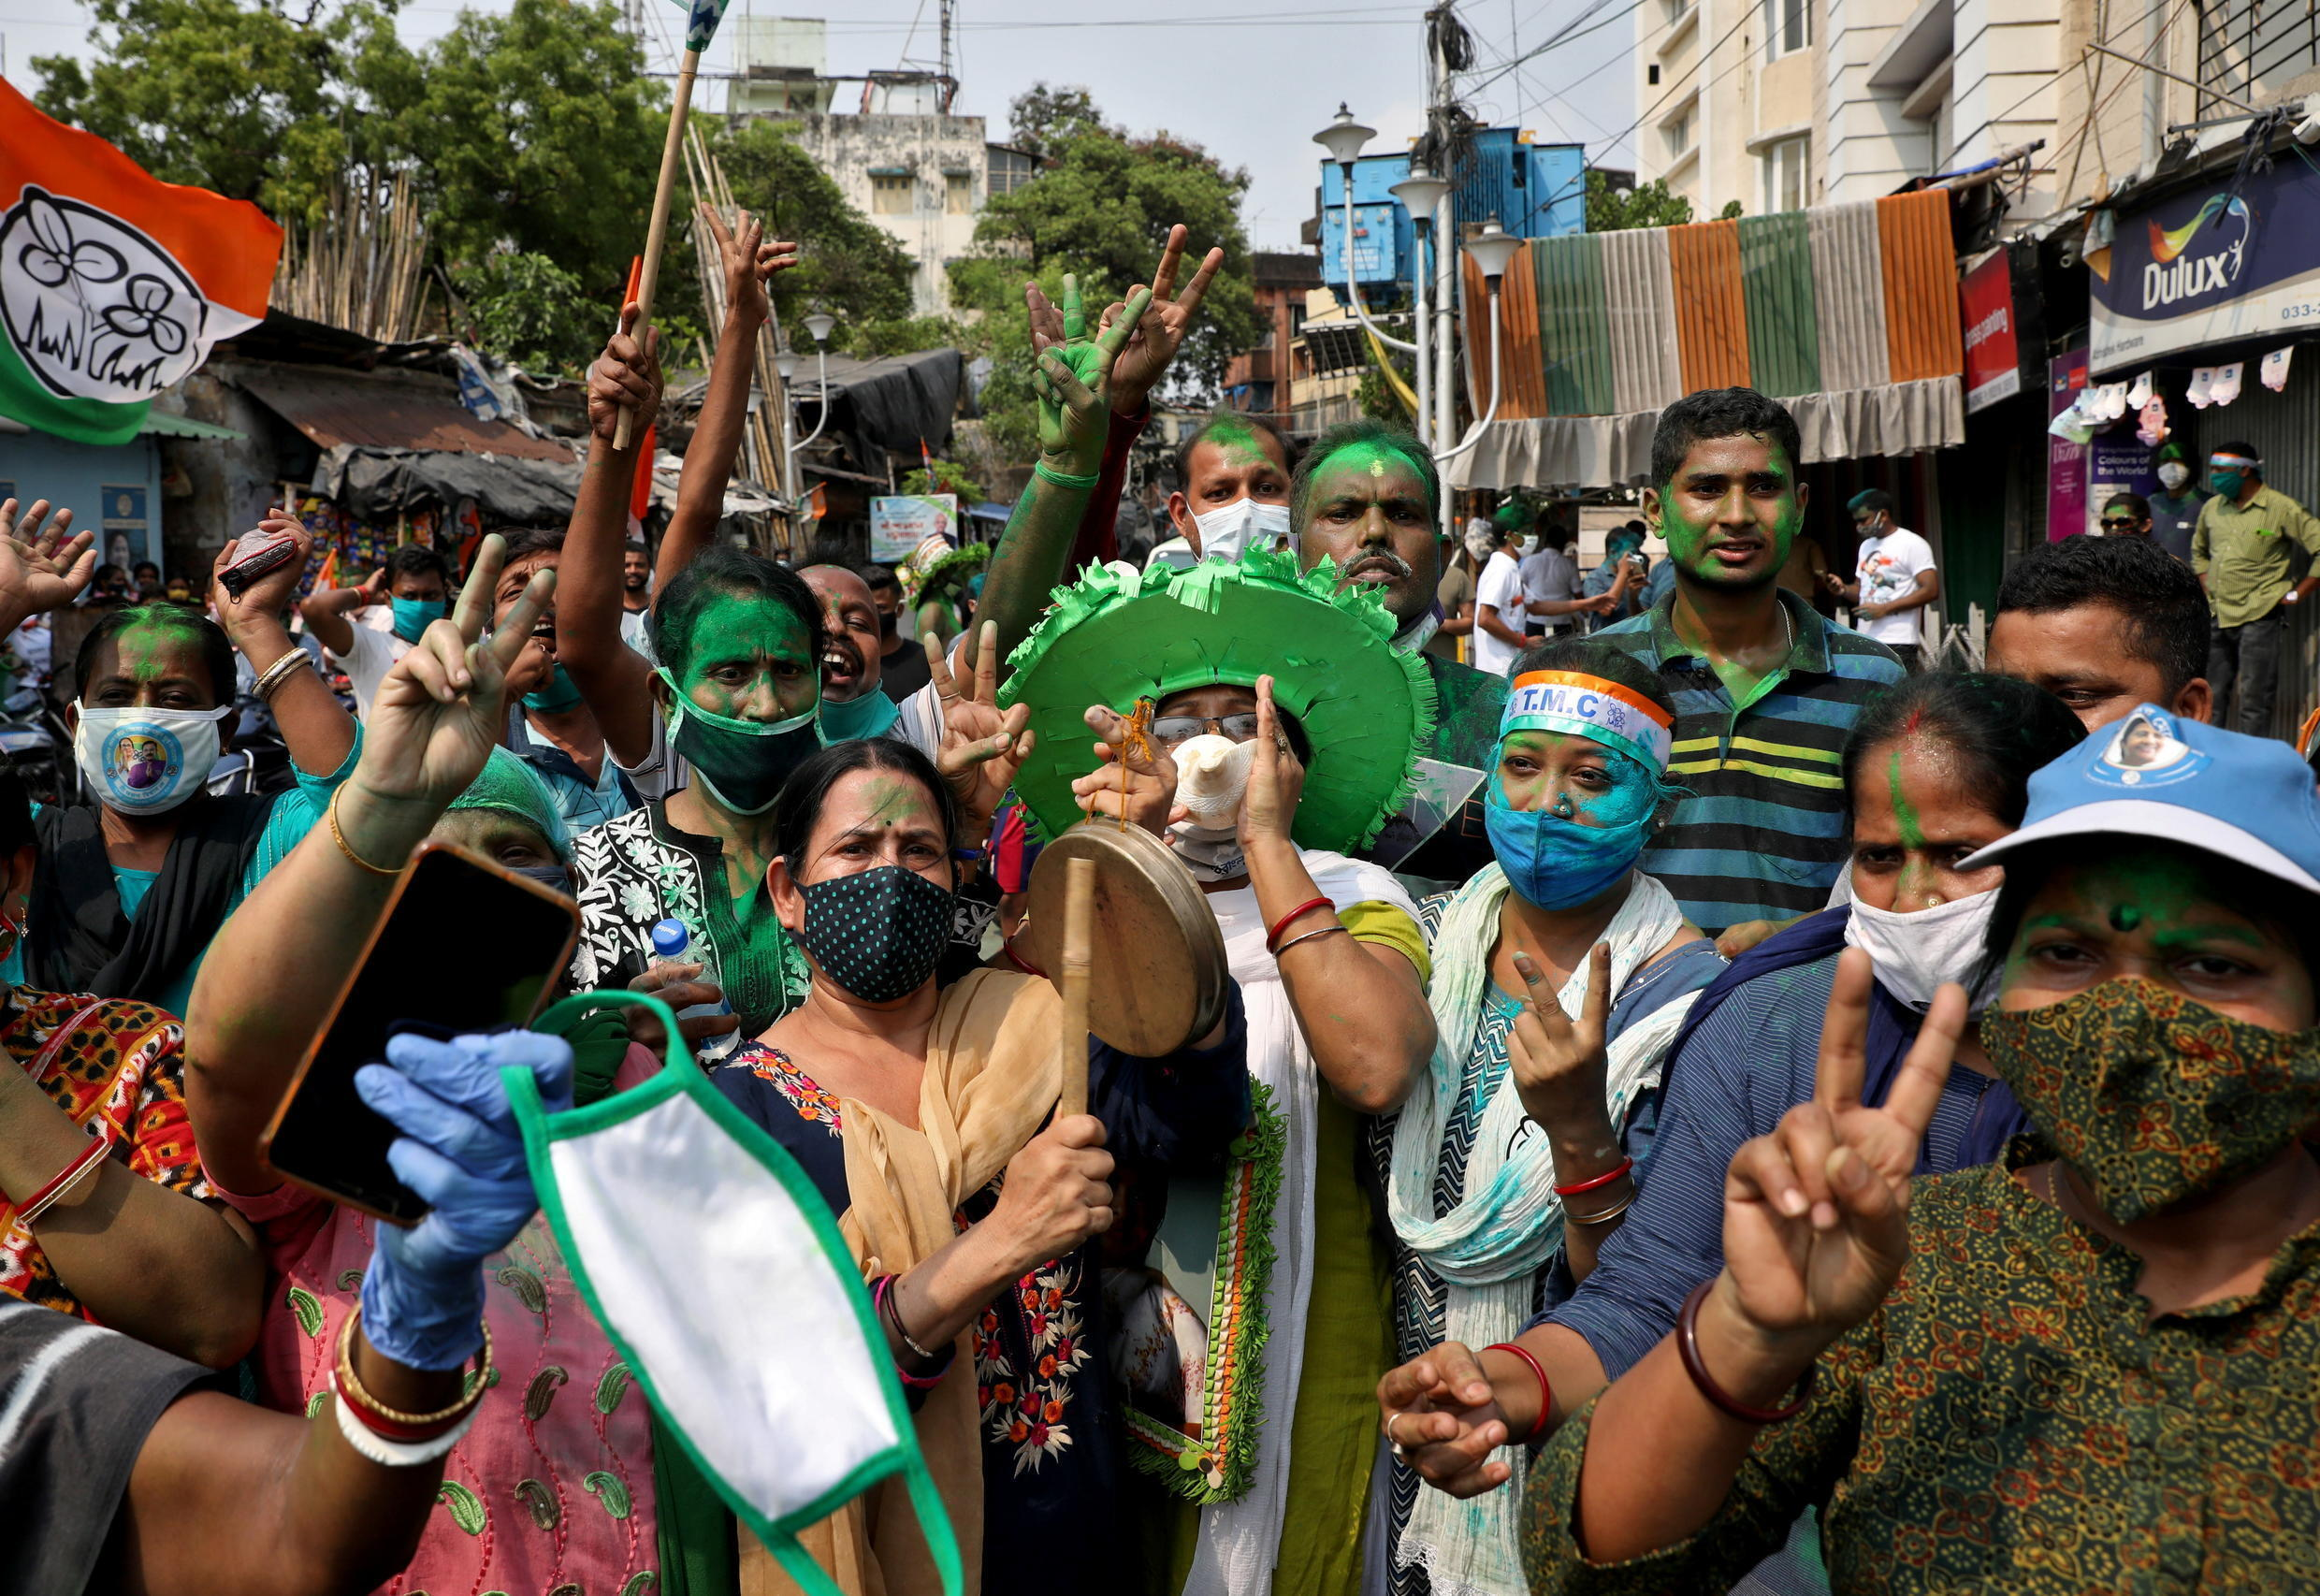 Inde - Elections - Calcutta - 2021-05-02T085650Z_261281082_RC2K7N9LHJUR_RTRMADP_3_INDIA-ELECTION-RESULT